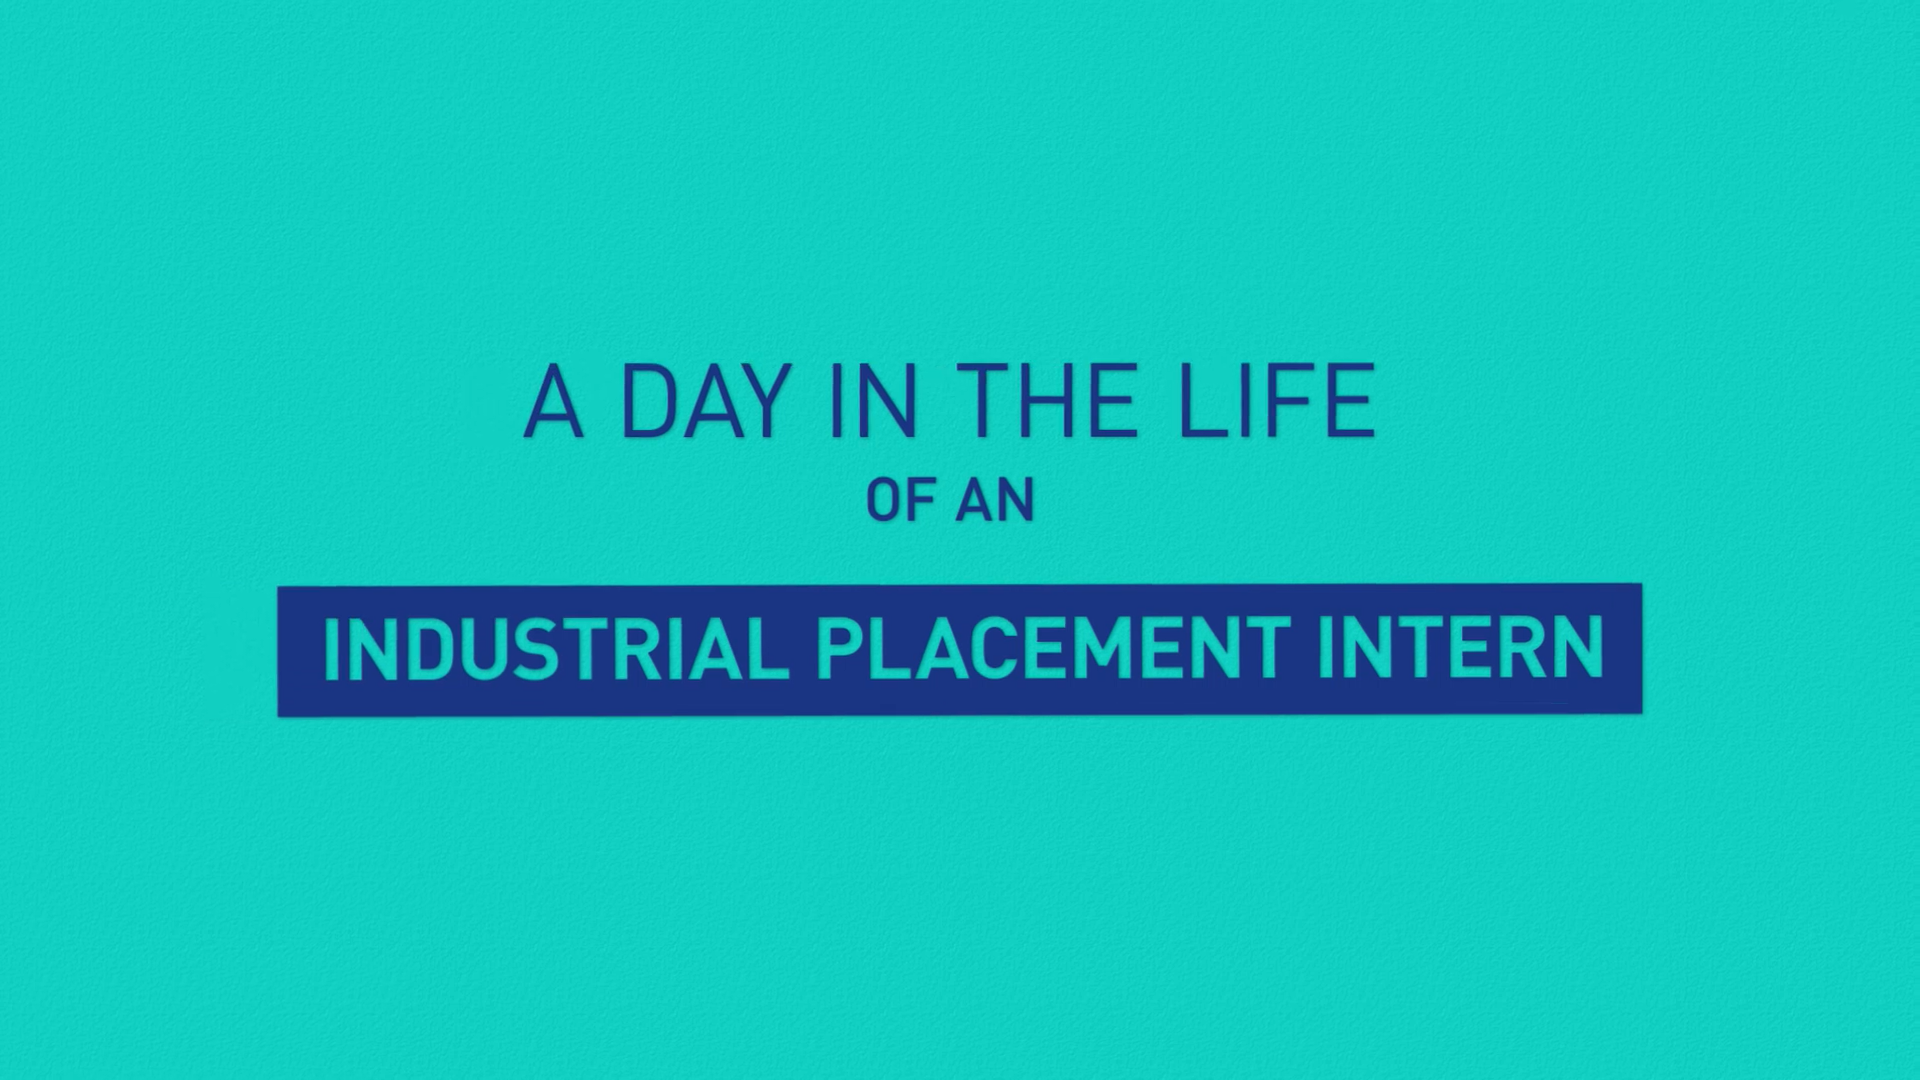 A day of Industrial placement intern